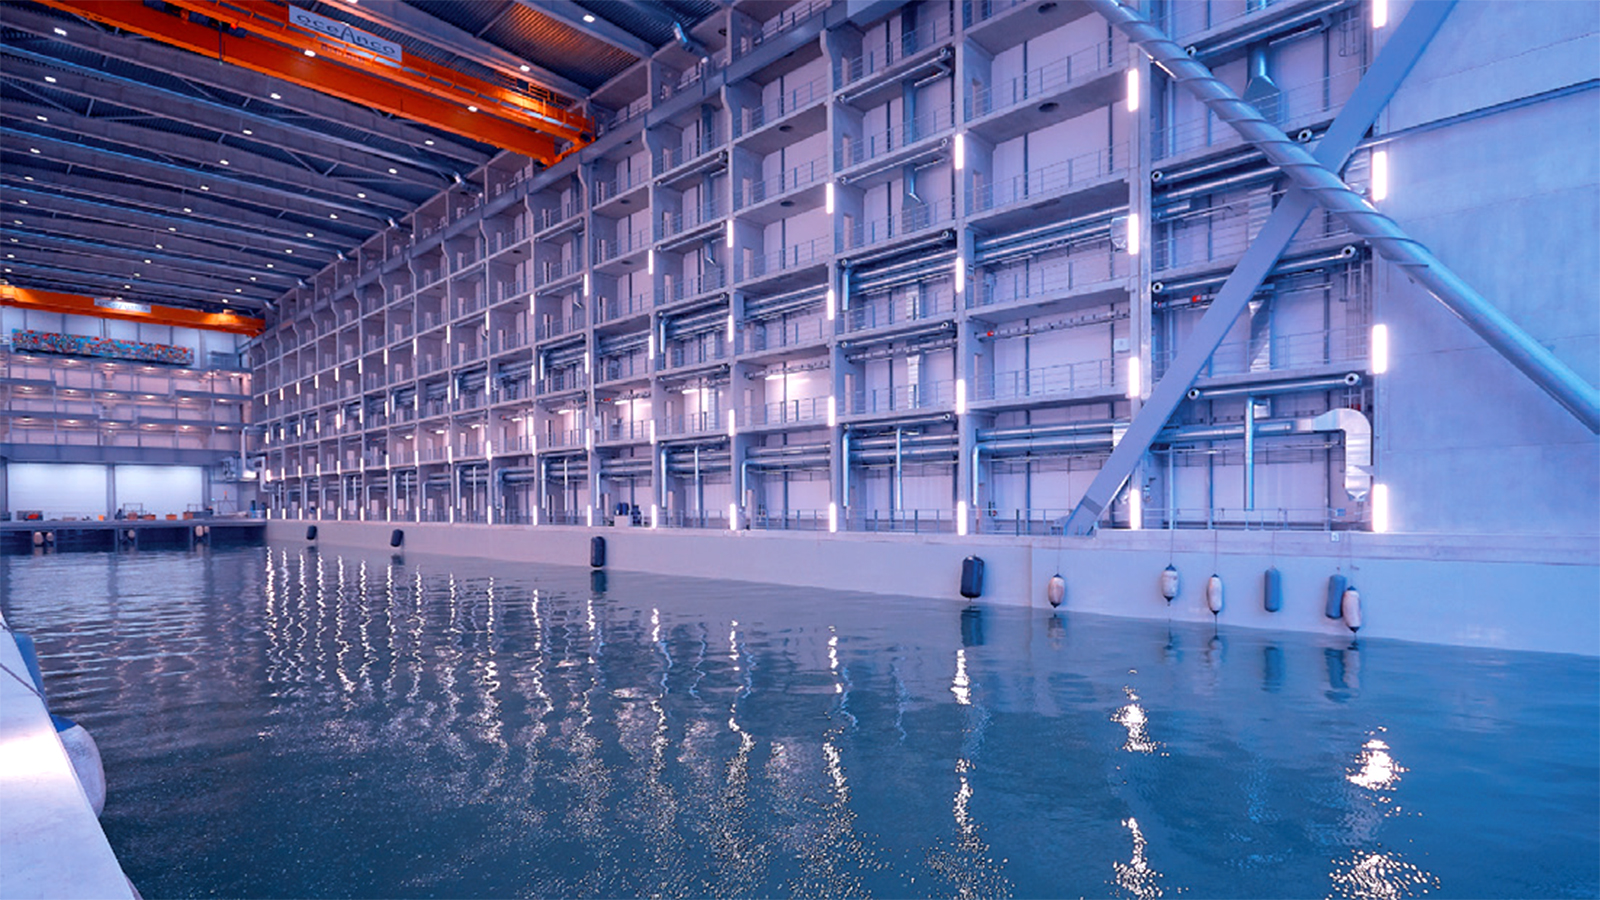 oceanco new yacht building shed